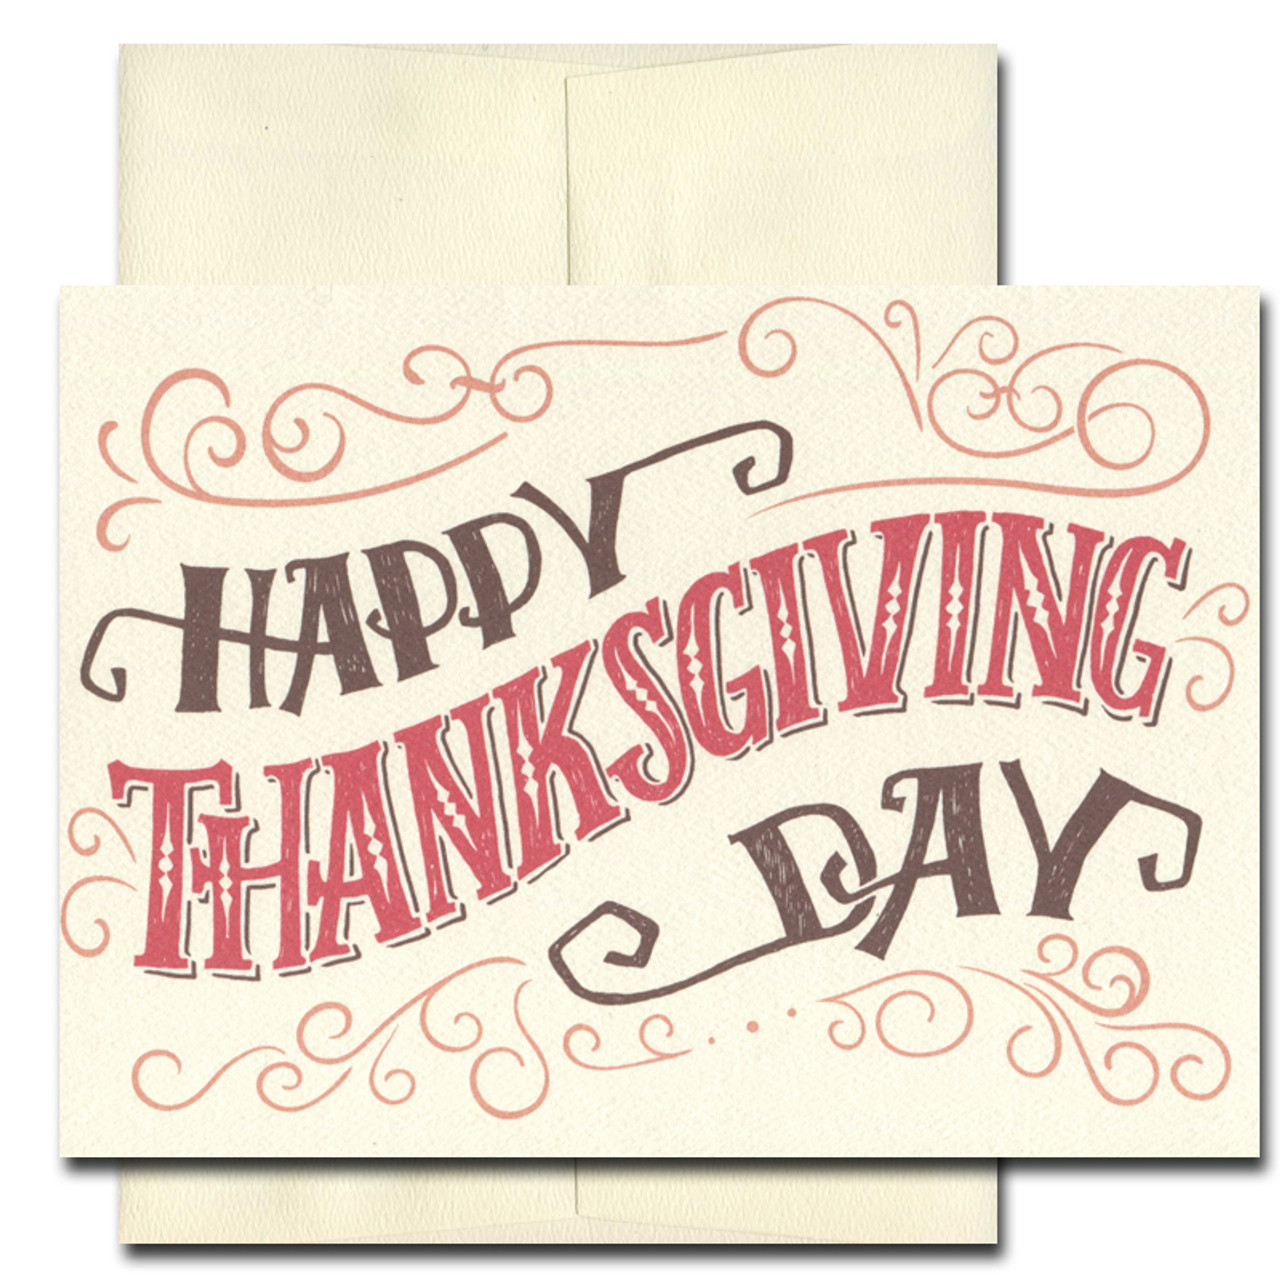 Best of the Season Thanksgiving card features a hand-lettered design